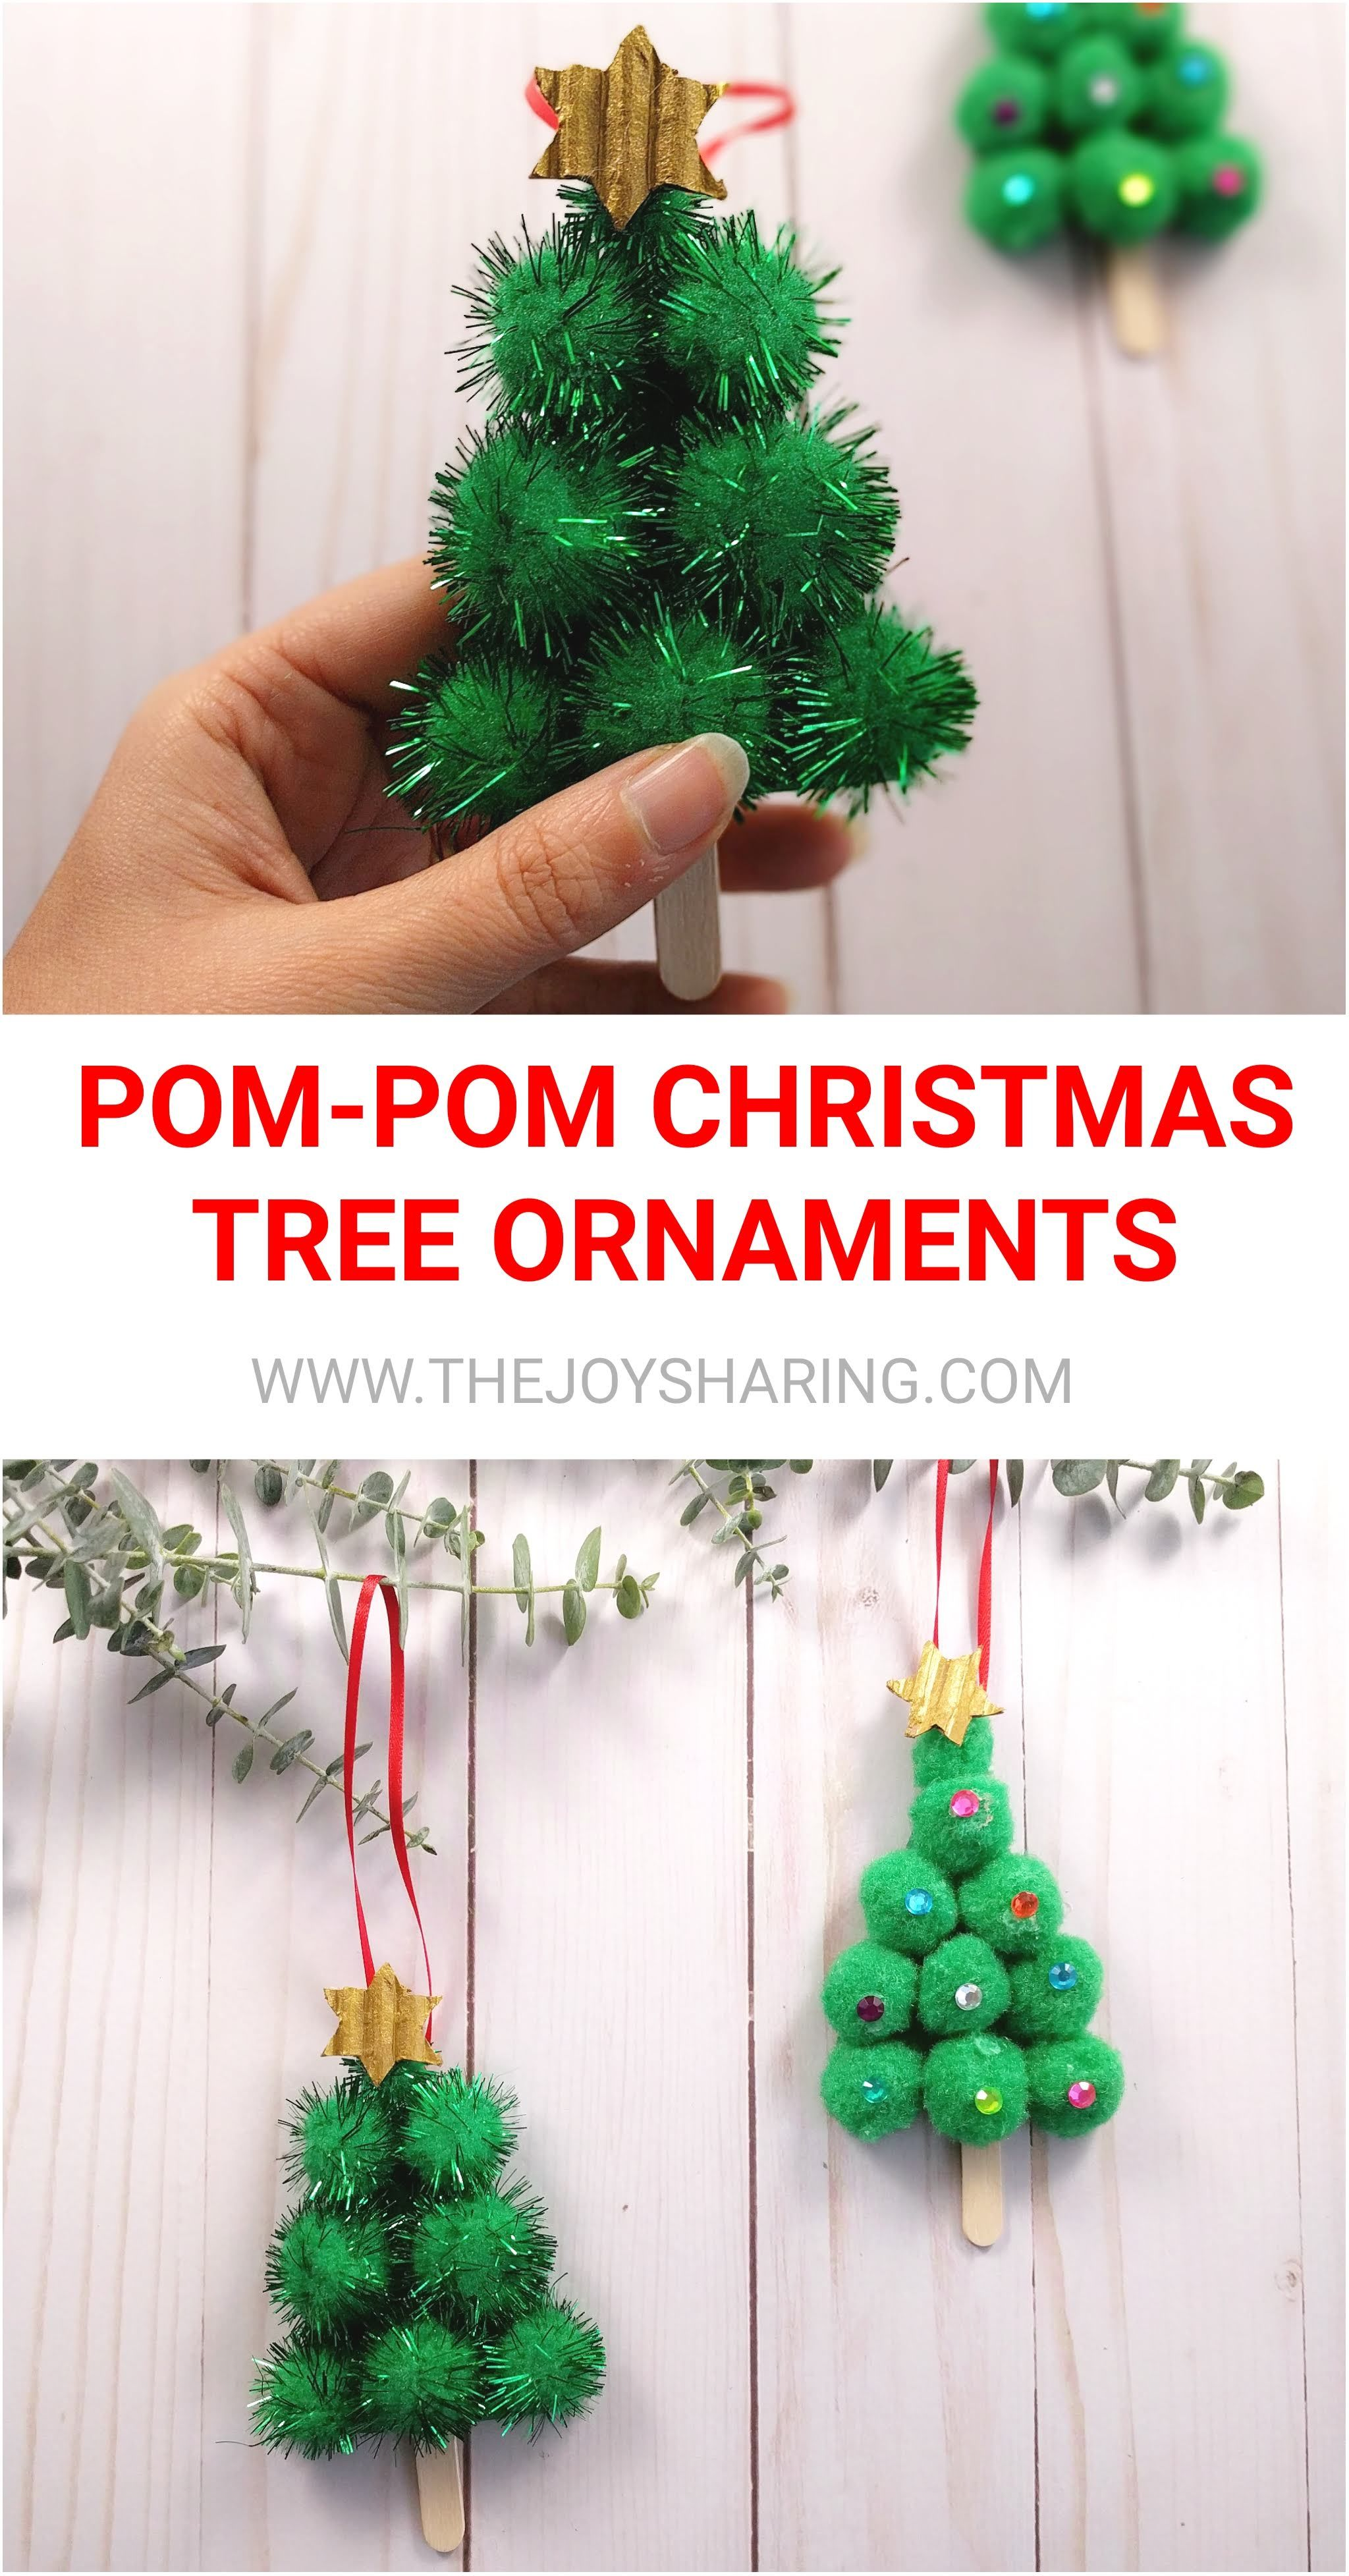 Pom Pom Christmas Tree Ornament Kids Christmas Ornaments Christmas Crafts For Kids Christmas Crafts